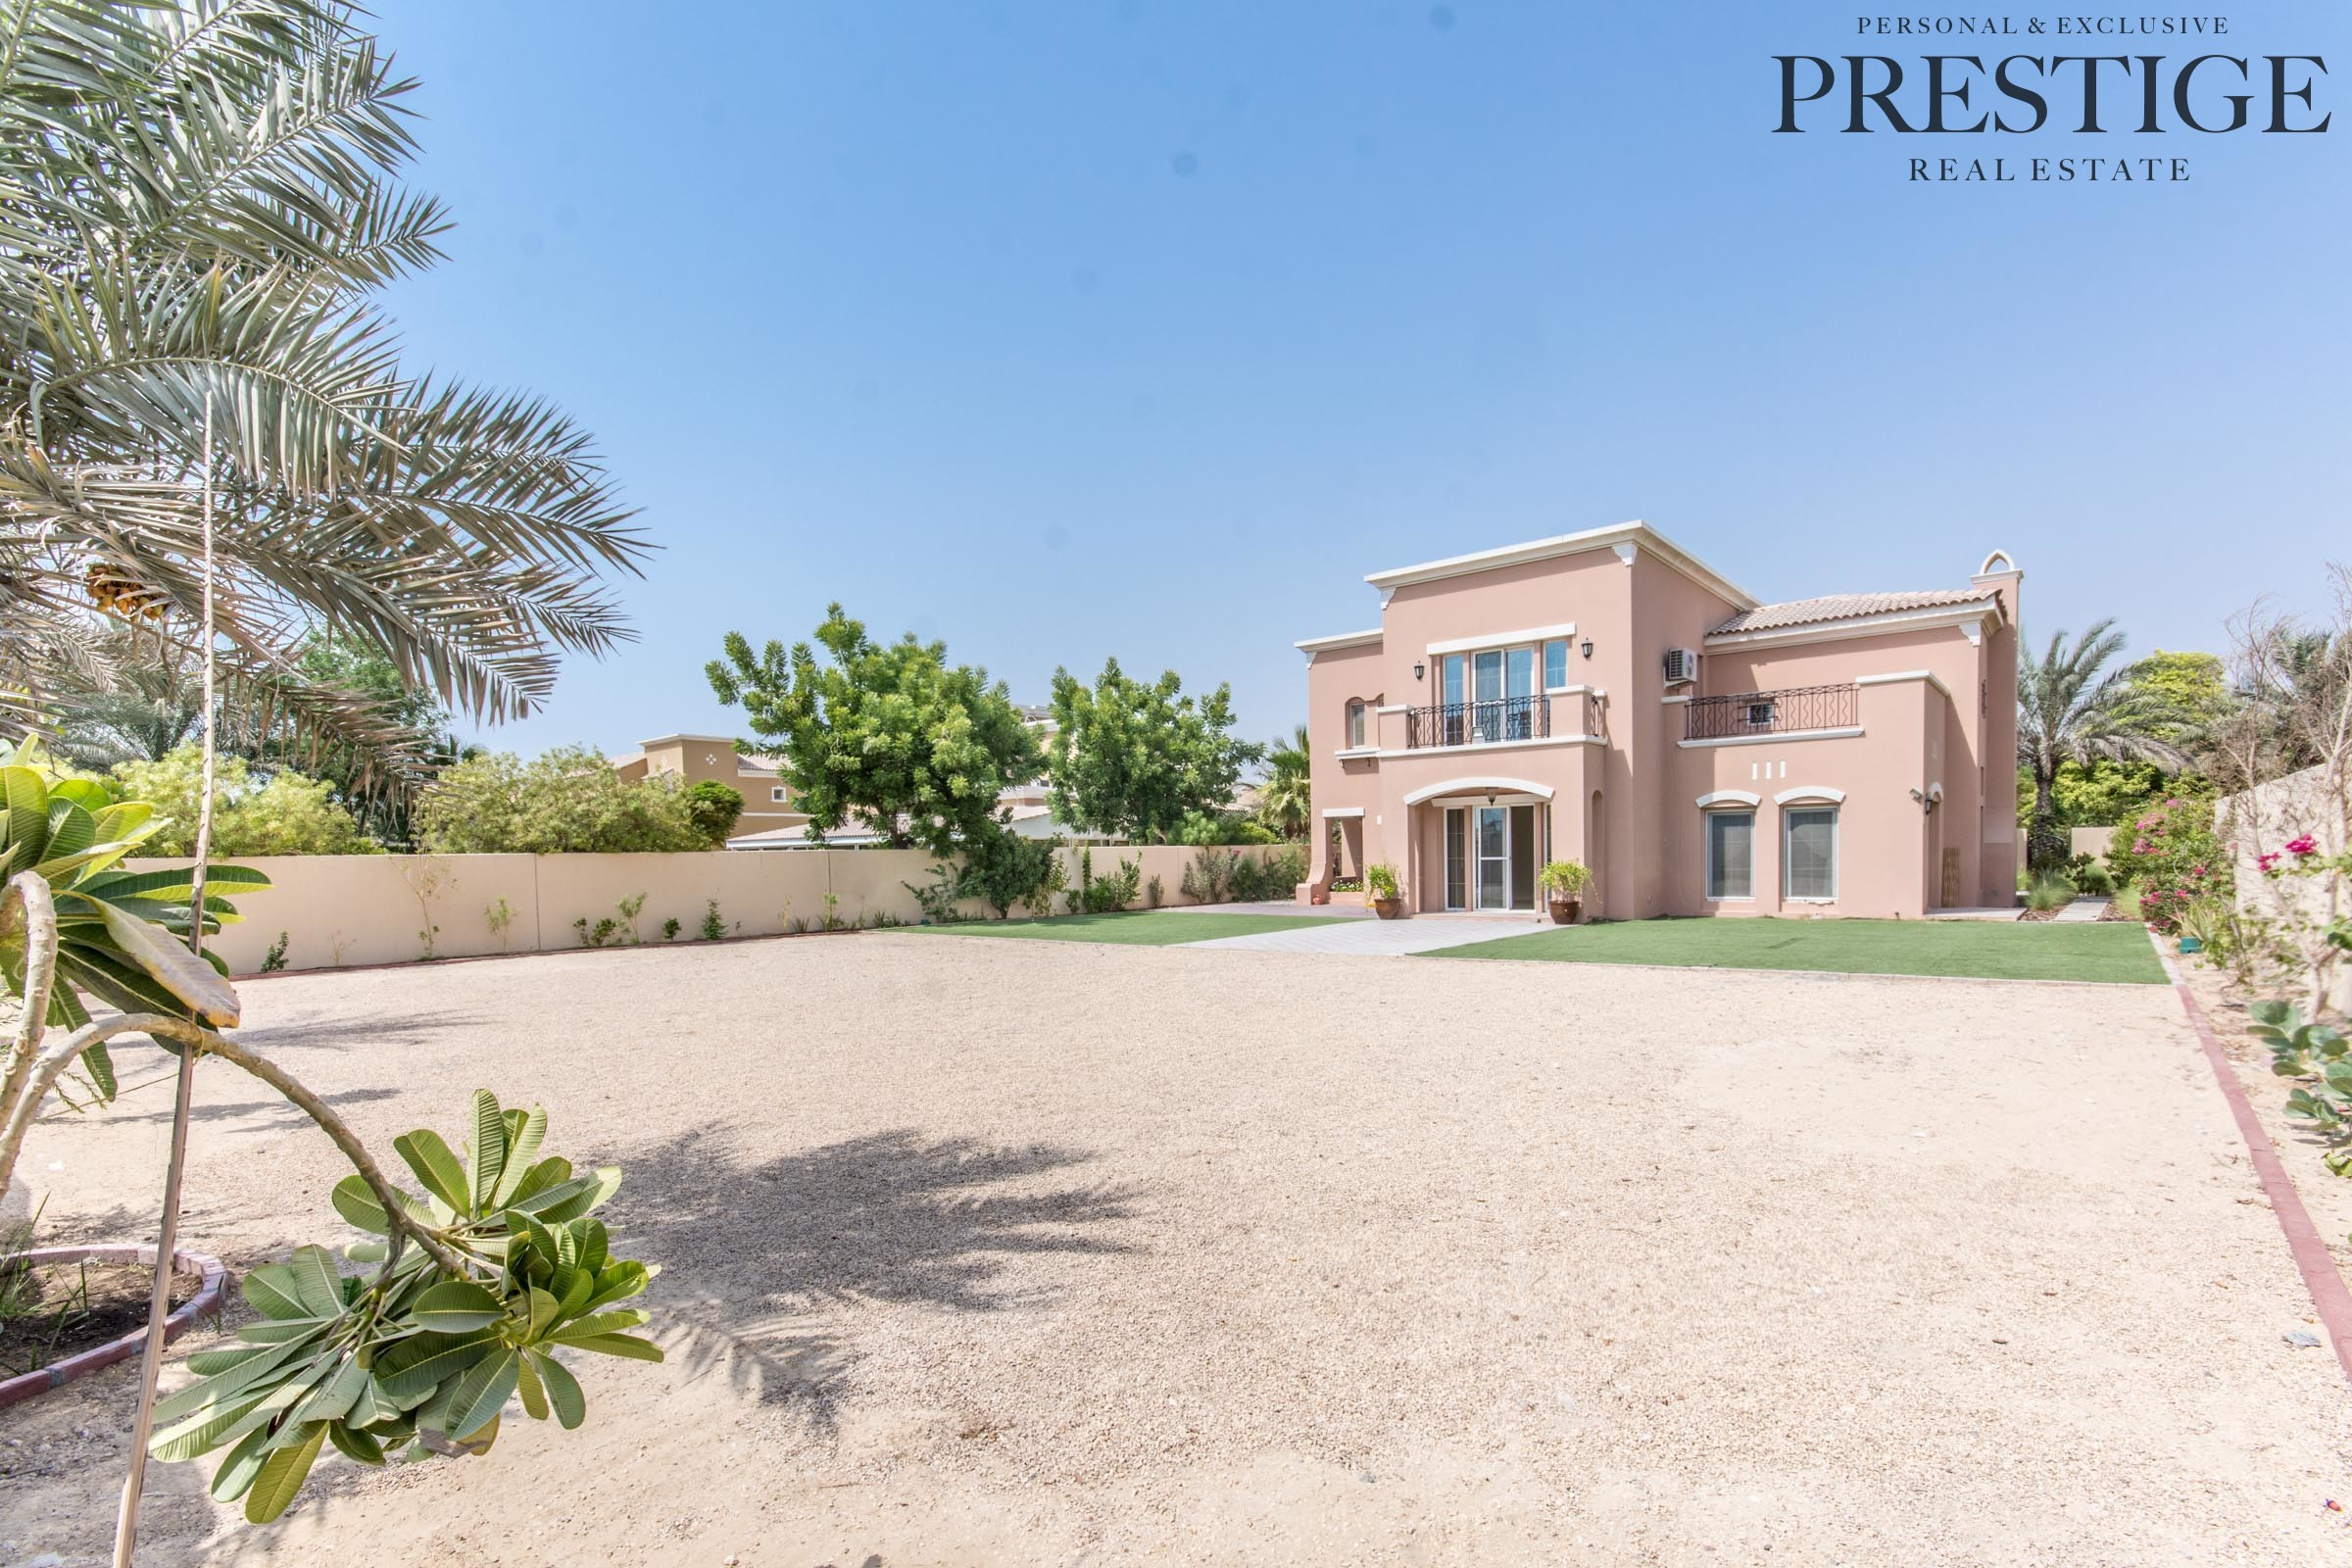 5-bed-mirador-la-coleccion-2-arabian-ranches-1